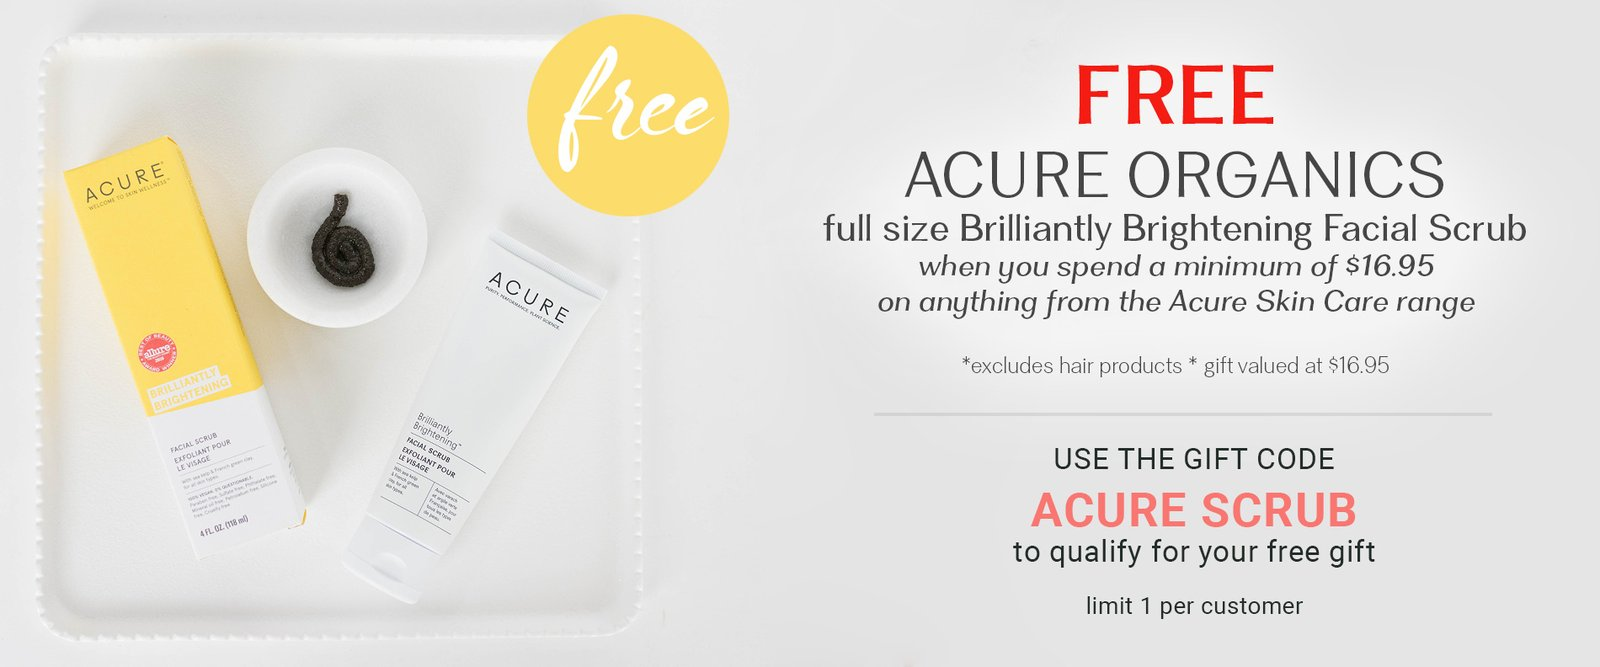 Acure Gift With Purchase